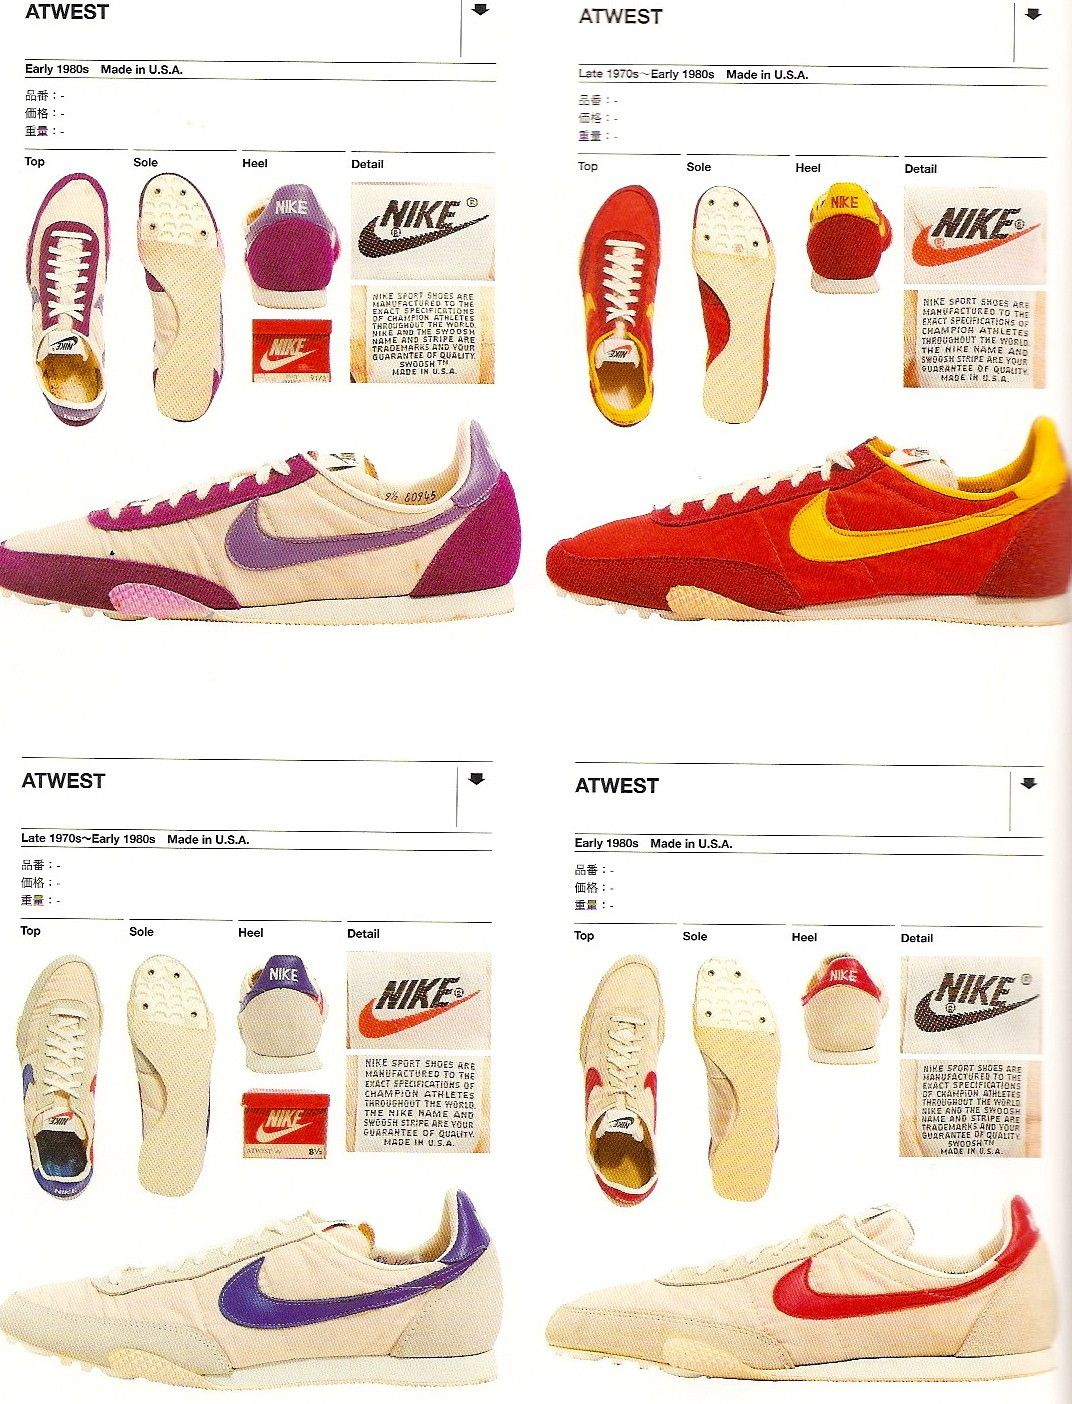 dc7d77f1bf62 nike atwest spike 70 s